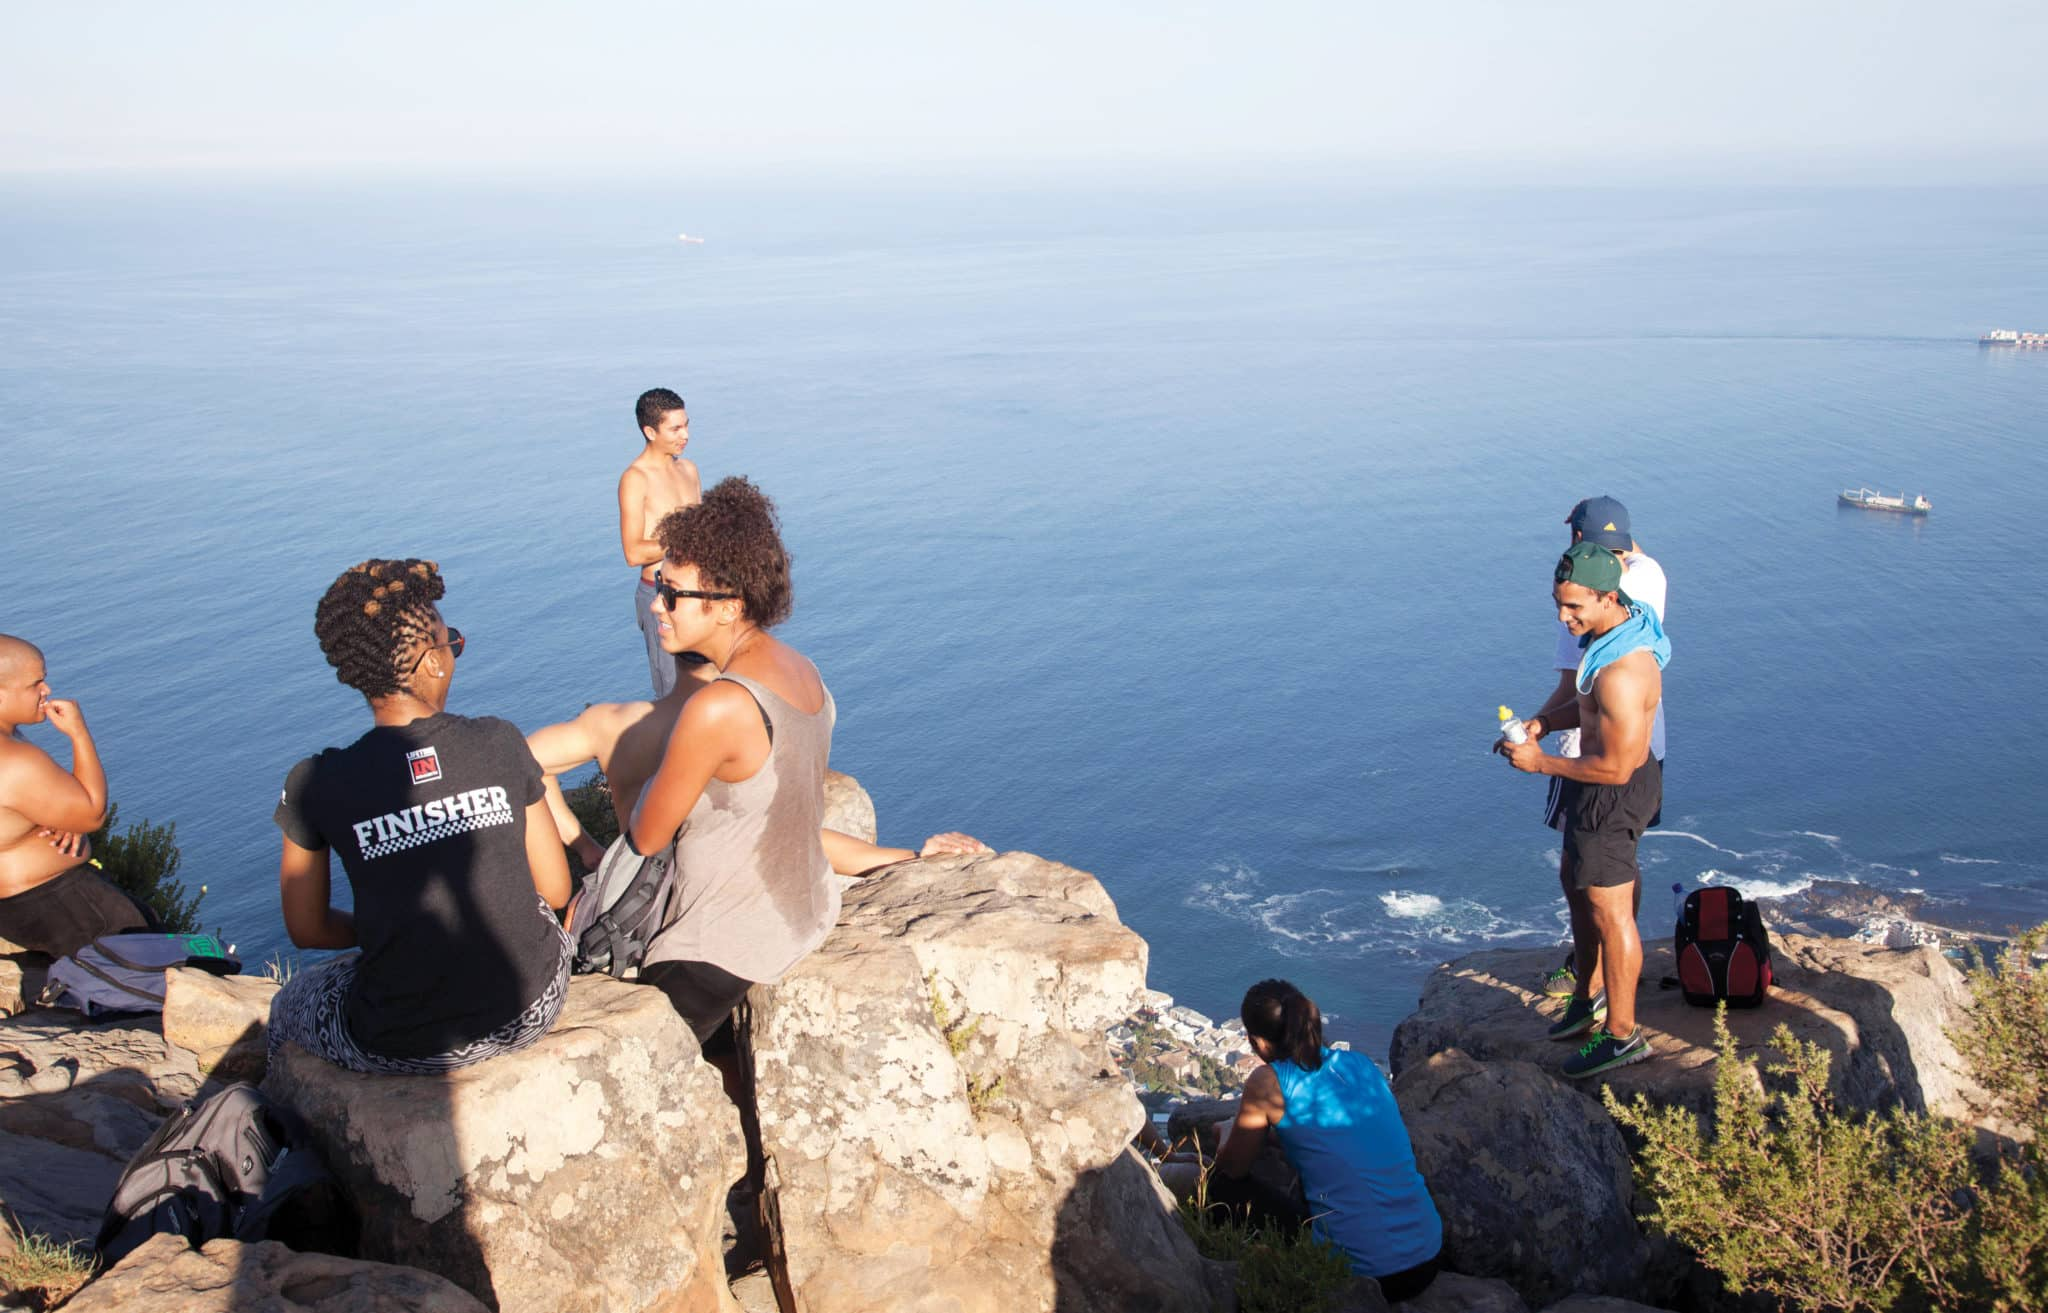 FTXK58 Hikers at the Top of Lions Head Early morning in Cape Town - South Africa